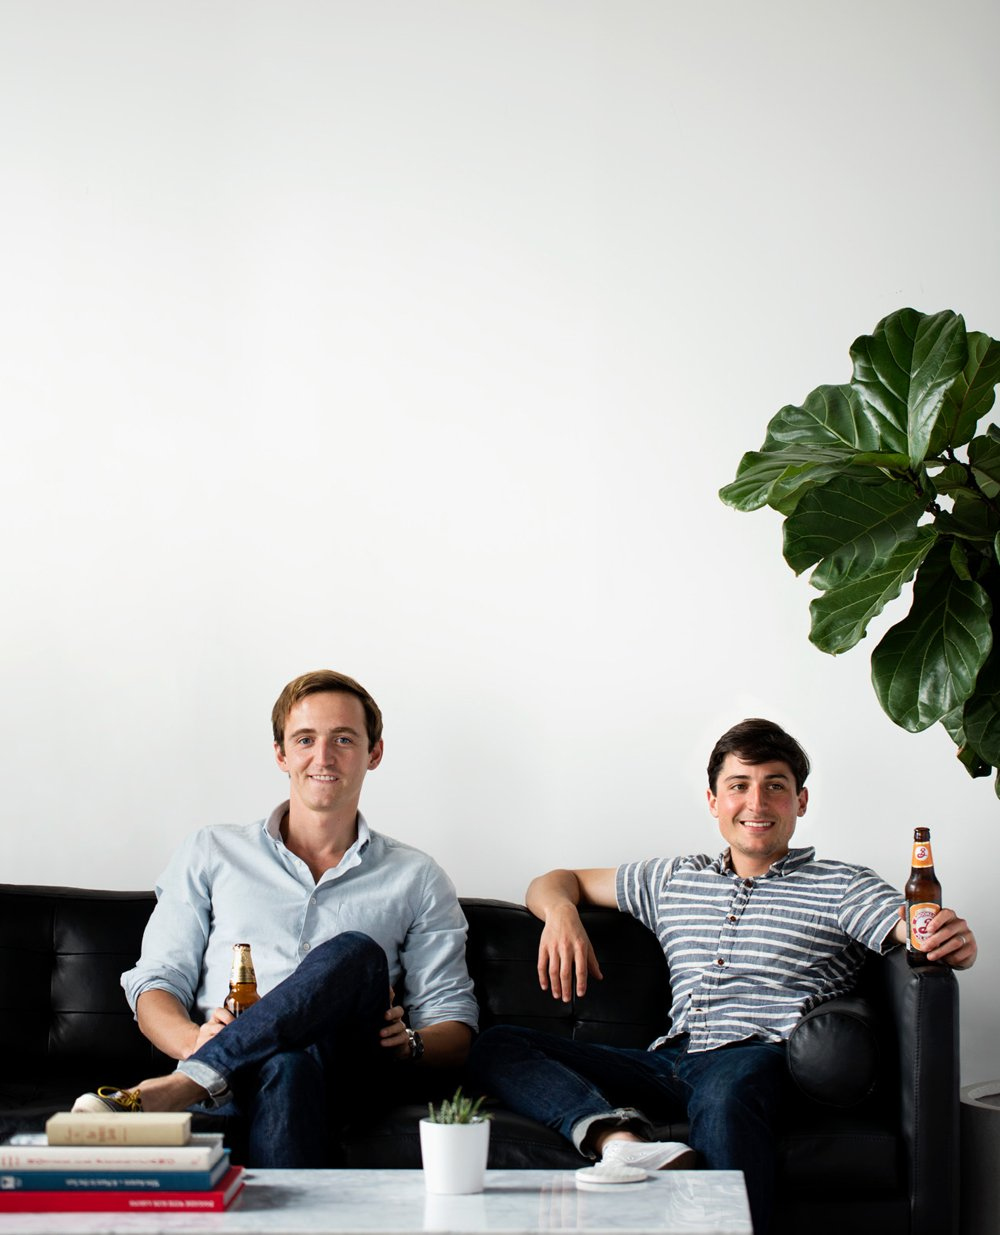 Product & Pattern: Josh Williams and Eric Prum of W&P